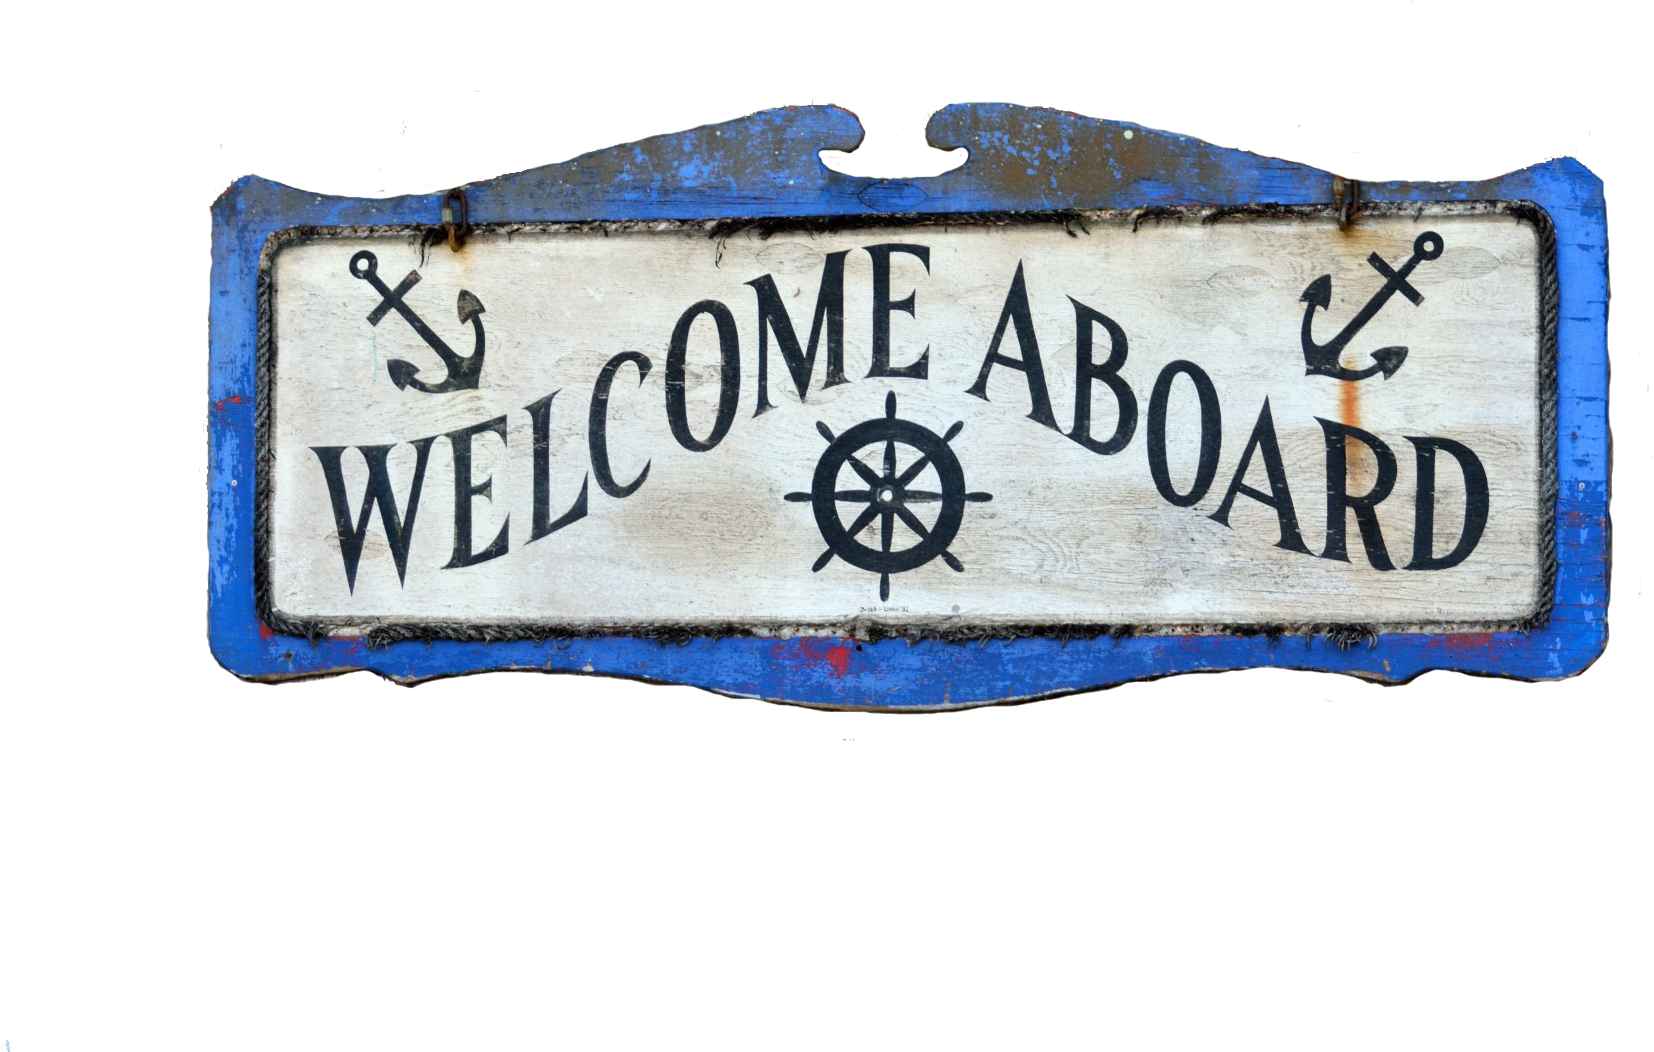 Transparent welcome aboard clipart - Welcome Aboard Png - Public Domain Images Welcome